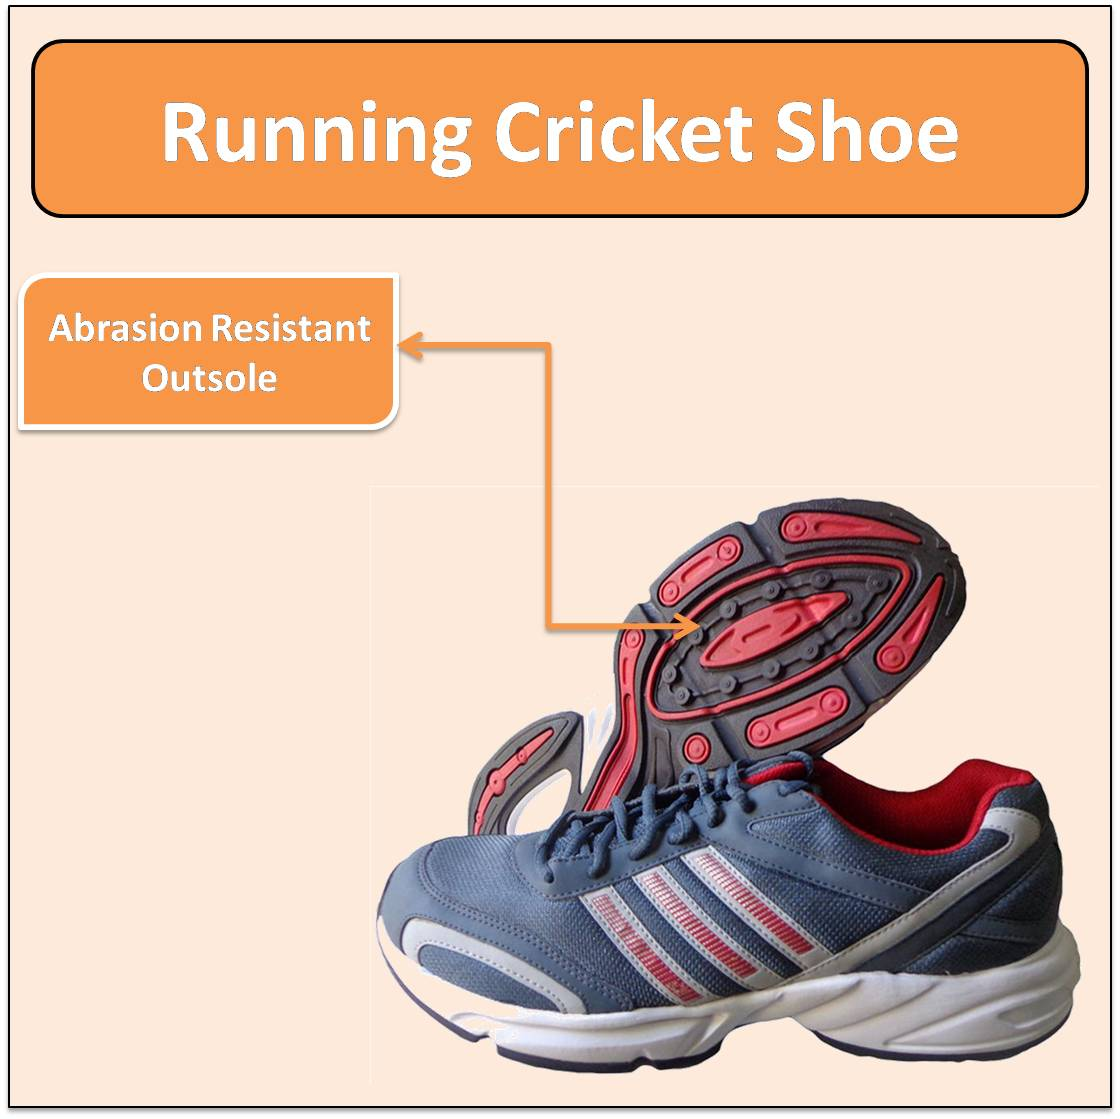 Running Cricket Shoe